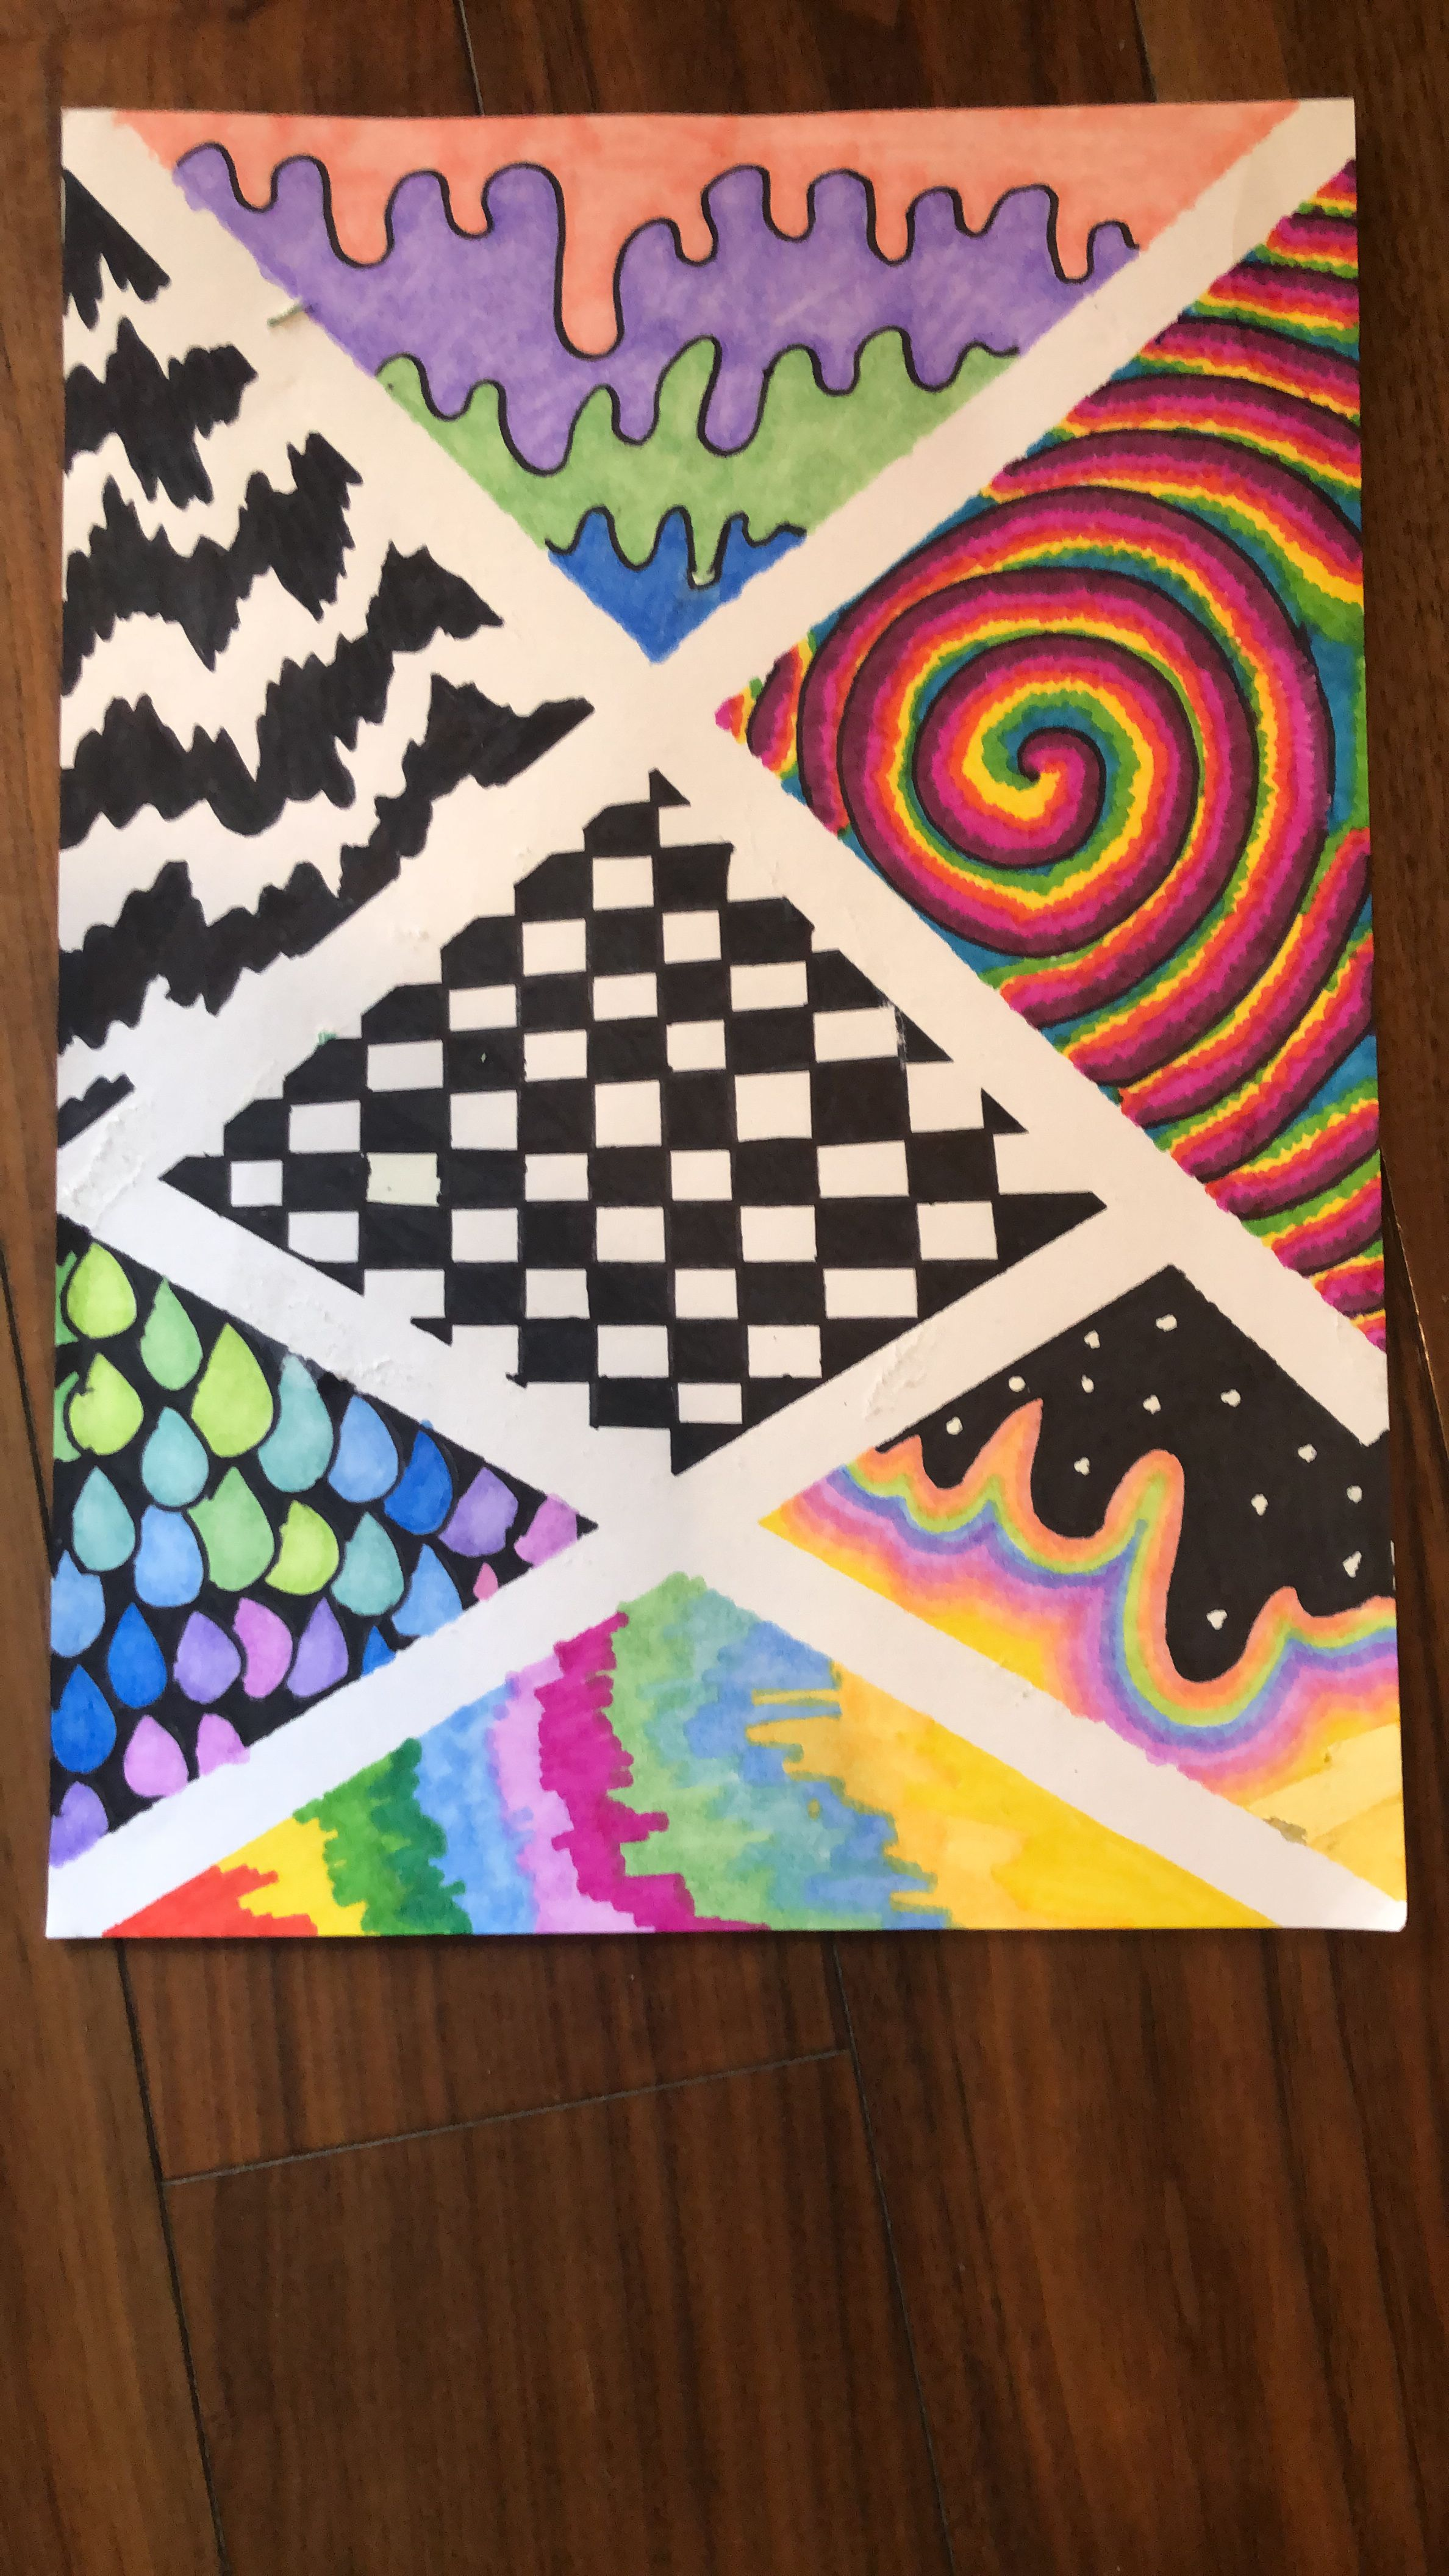 Pin By Anna Sophia Aroli On Tumblr Drawings In 2020 Diy Canvas Art Small Canvas Art Hippie Painting